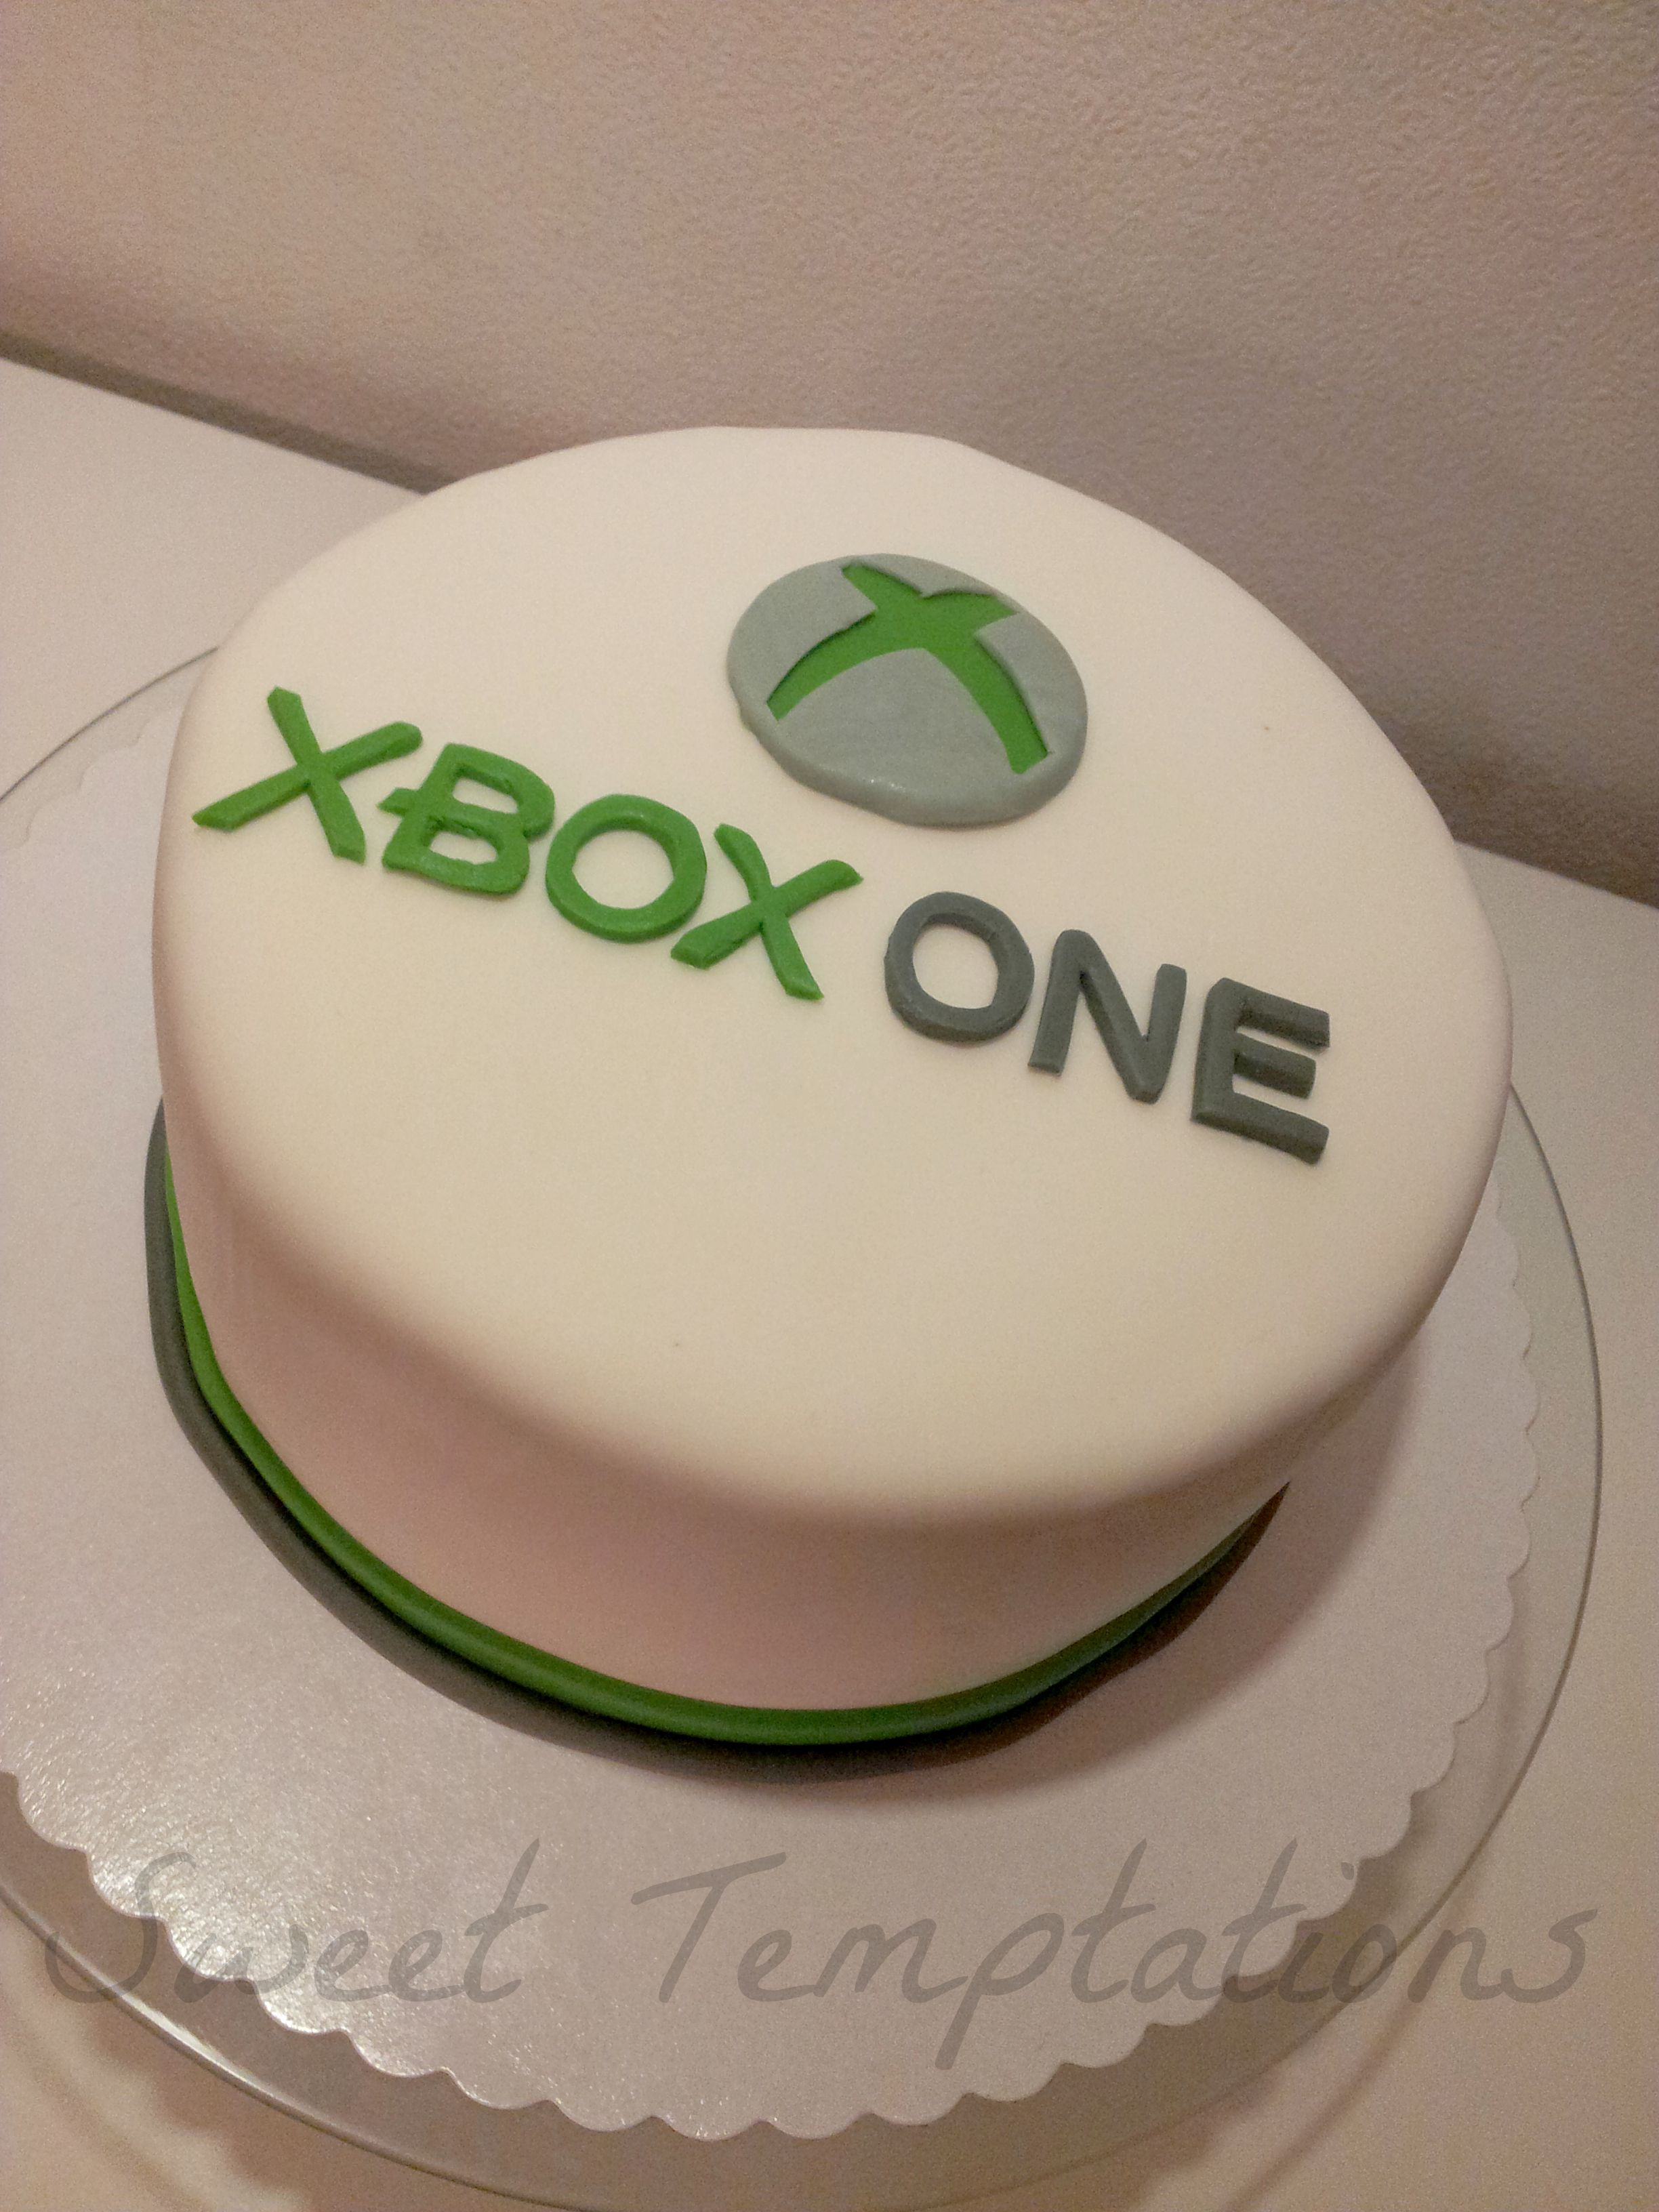 XBOX ONE Cake for the release date of the XBOX ONE Cake is filled